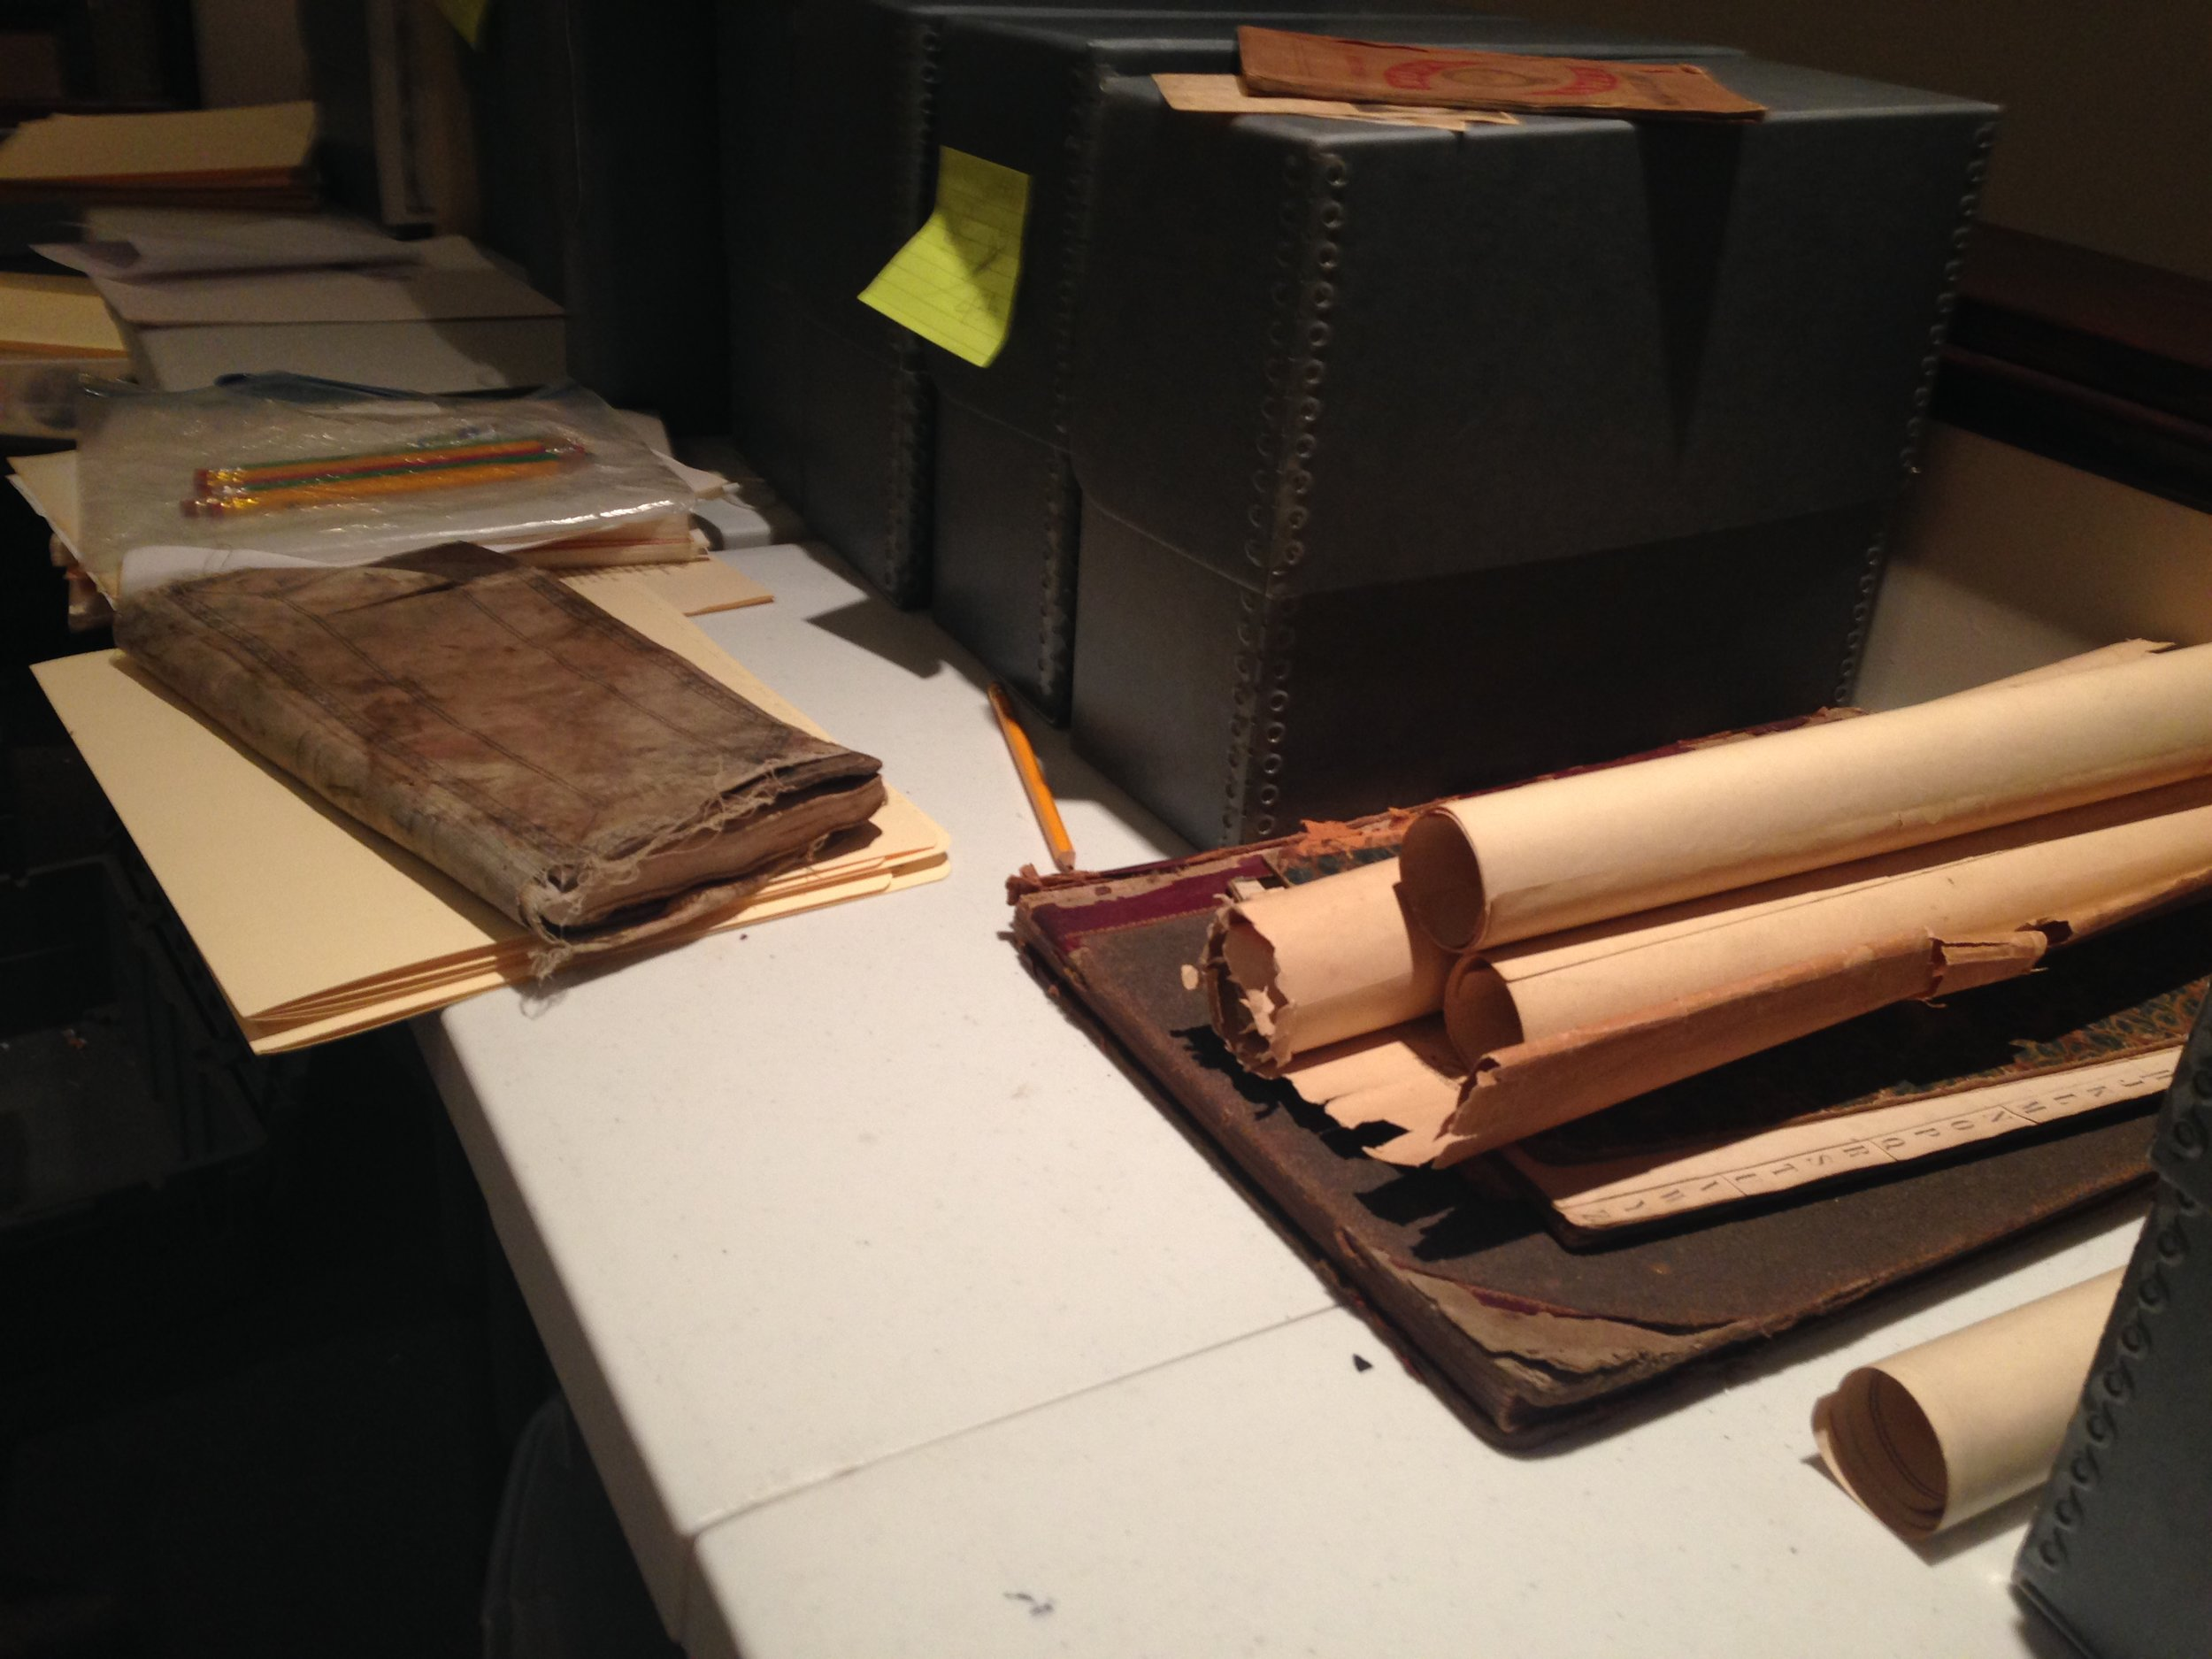 Archival records from the Frances Bibbins Latimer collection need a safe place to assemble and showcase the materials documenting the Eastern Shore's rich history.